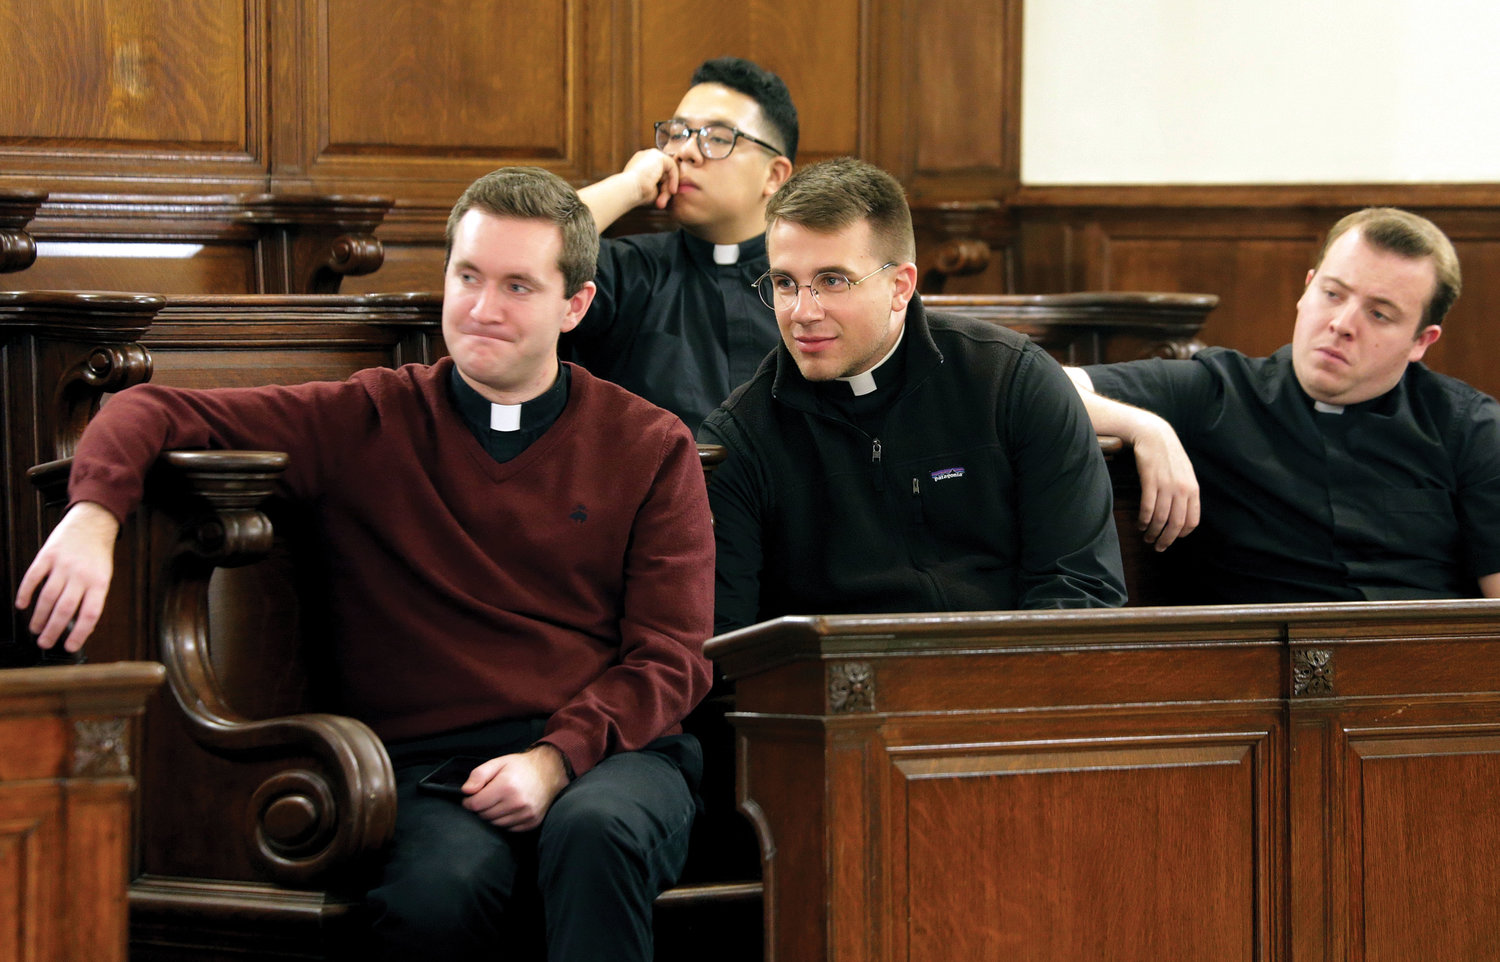 First row, from left, are John Crozier, Diocese of Rockville Centre; Colin Lomnitzer, Diocese of Bridgeport; and Paul Clores, Diocese of Rockville Centre. In the back row is Anthony Barranco, Archdiocese of New York.